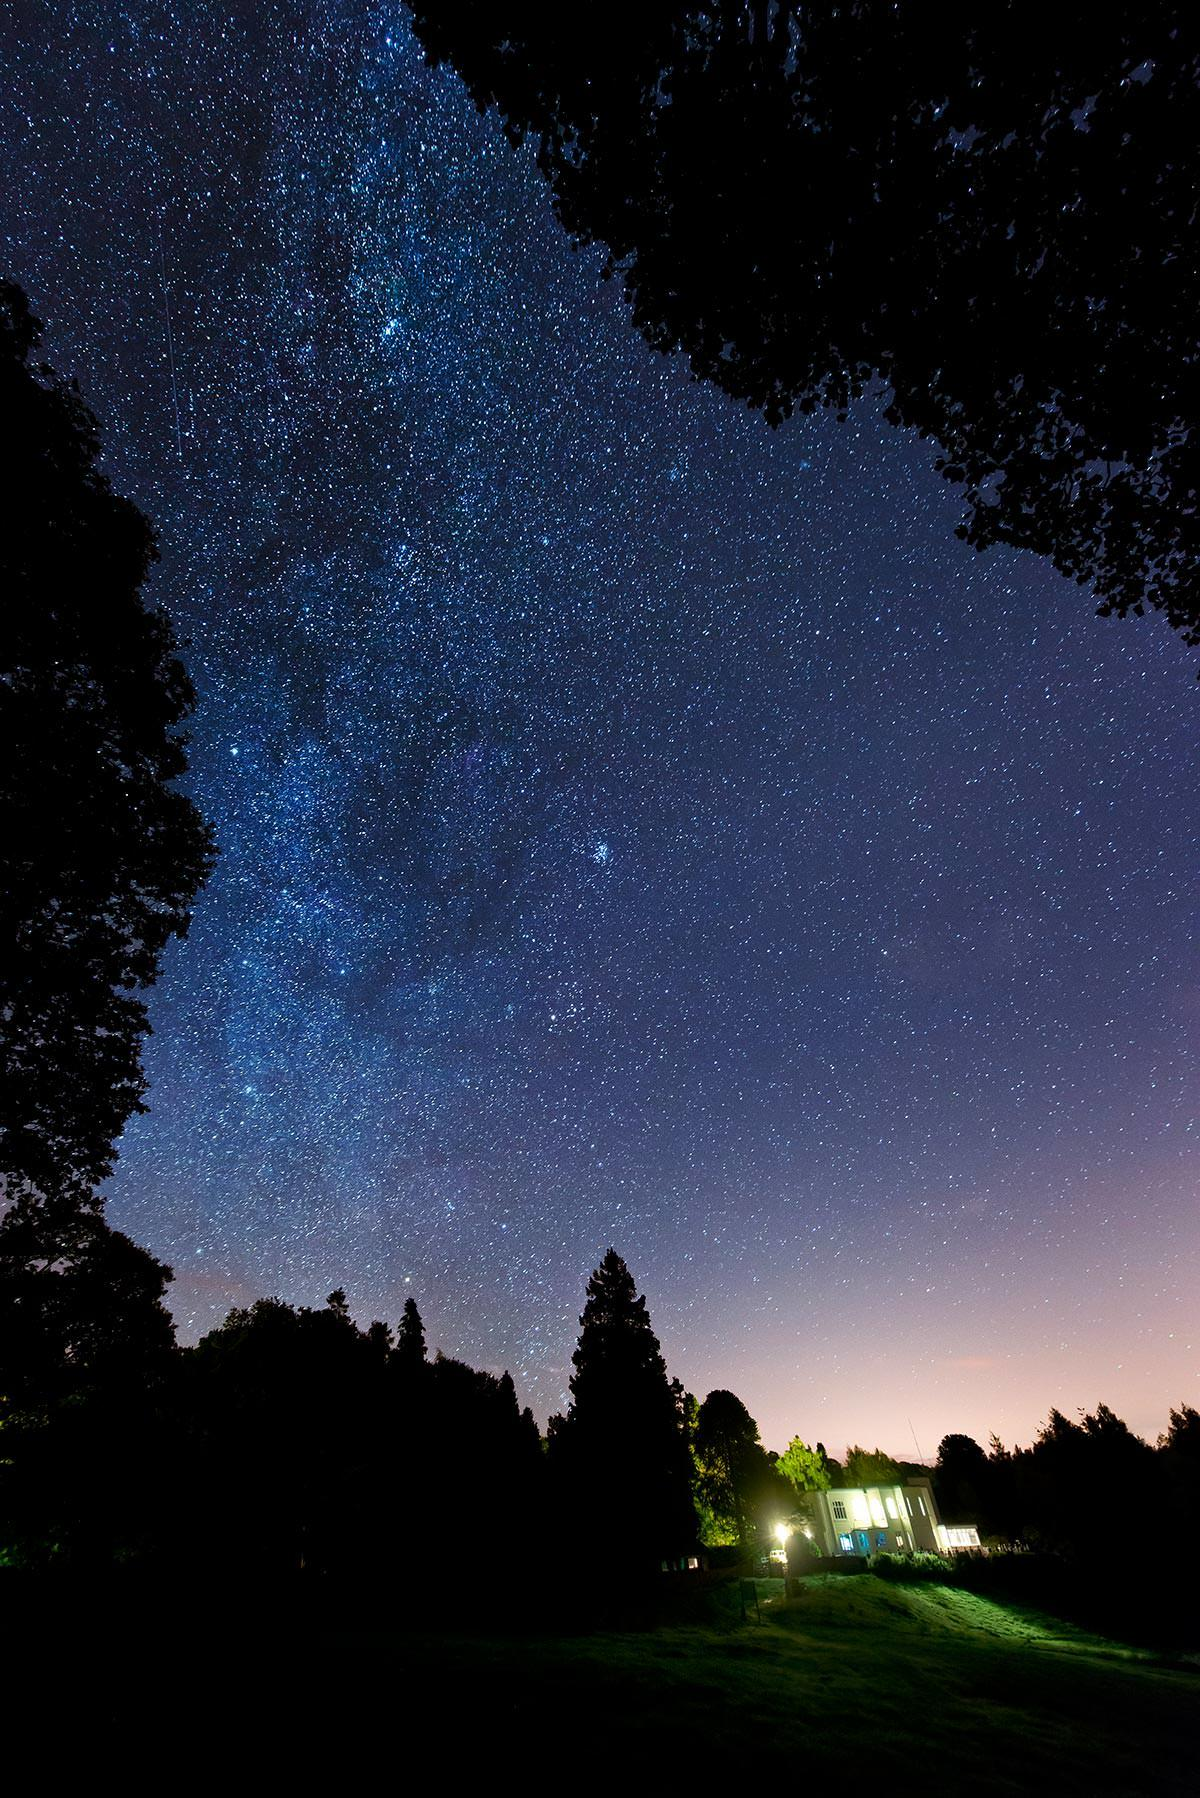 Milky way at Windermere